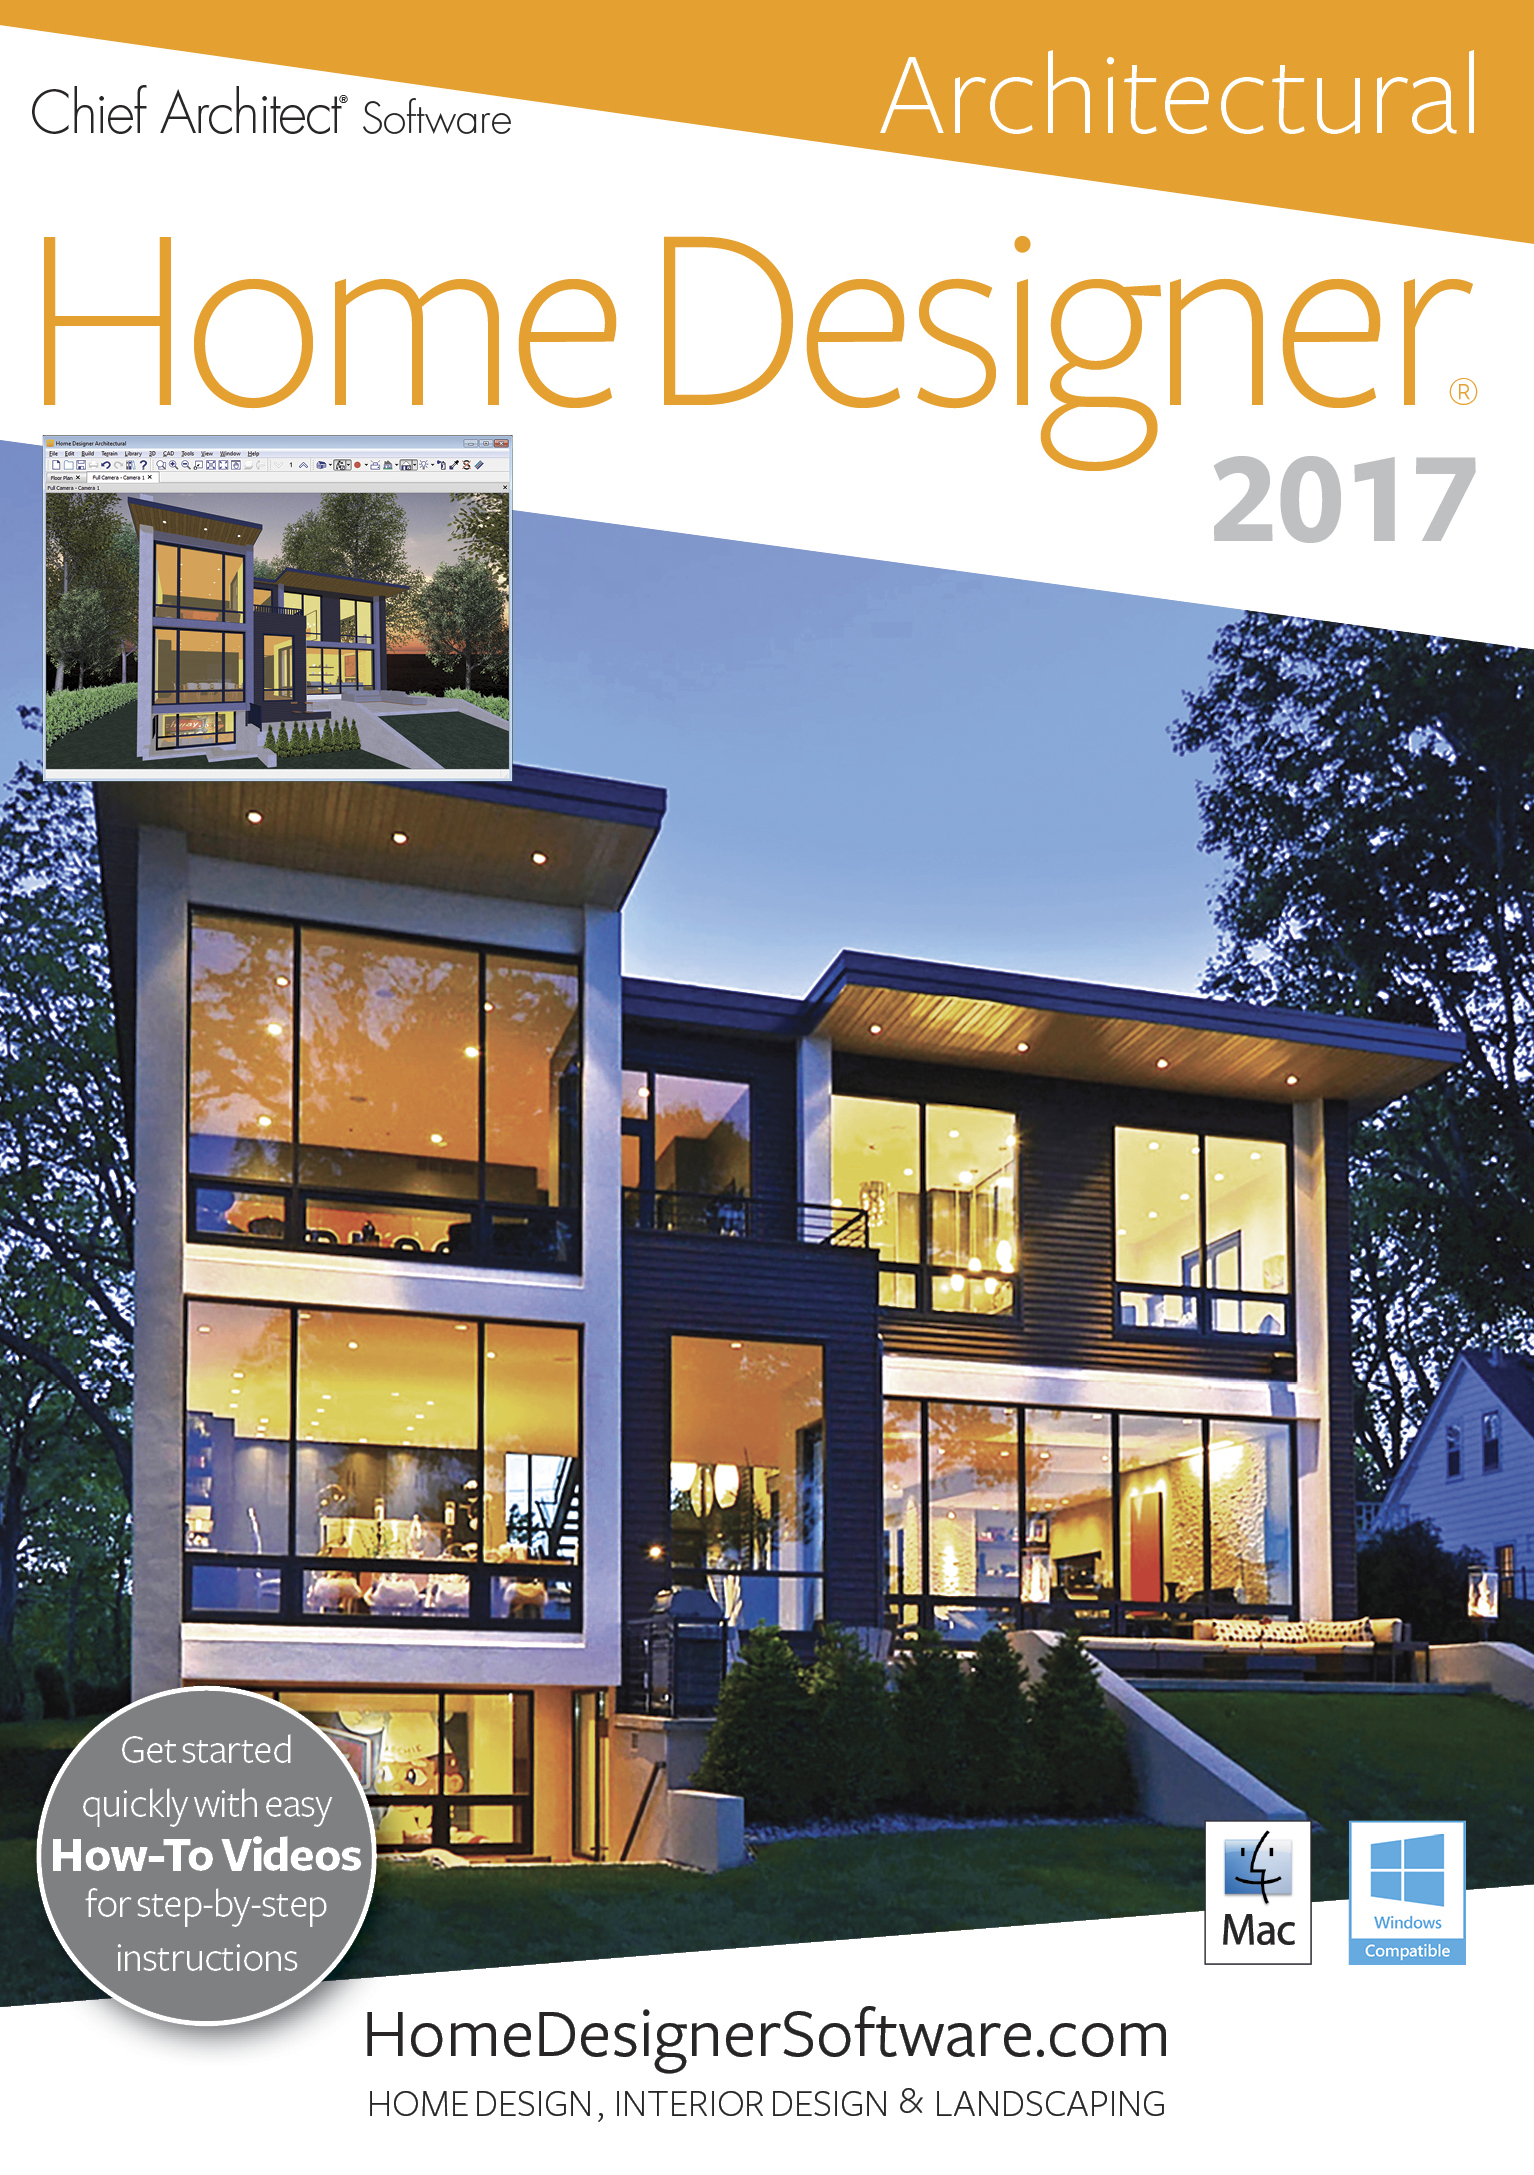 Amazon.com: Chief Architect Home Designer Architectural 2017 [Download]:  Software